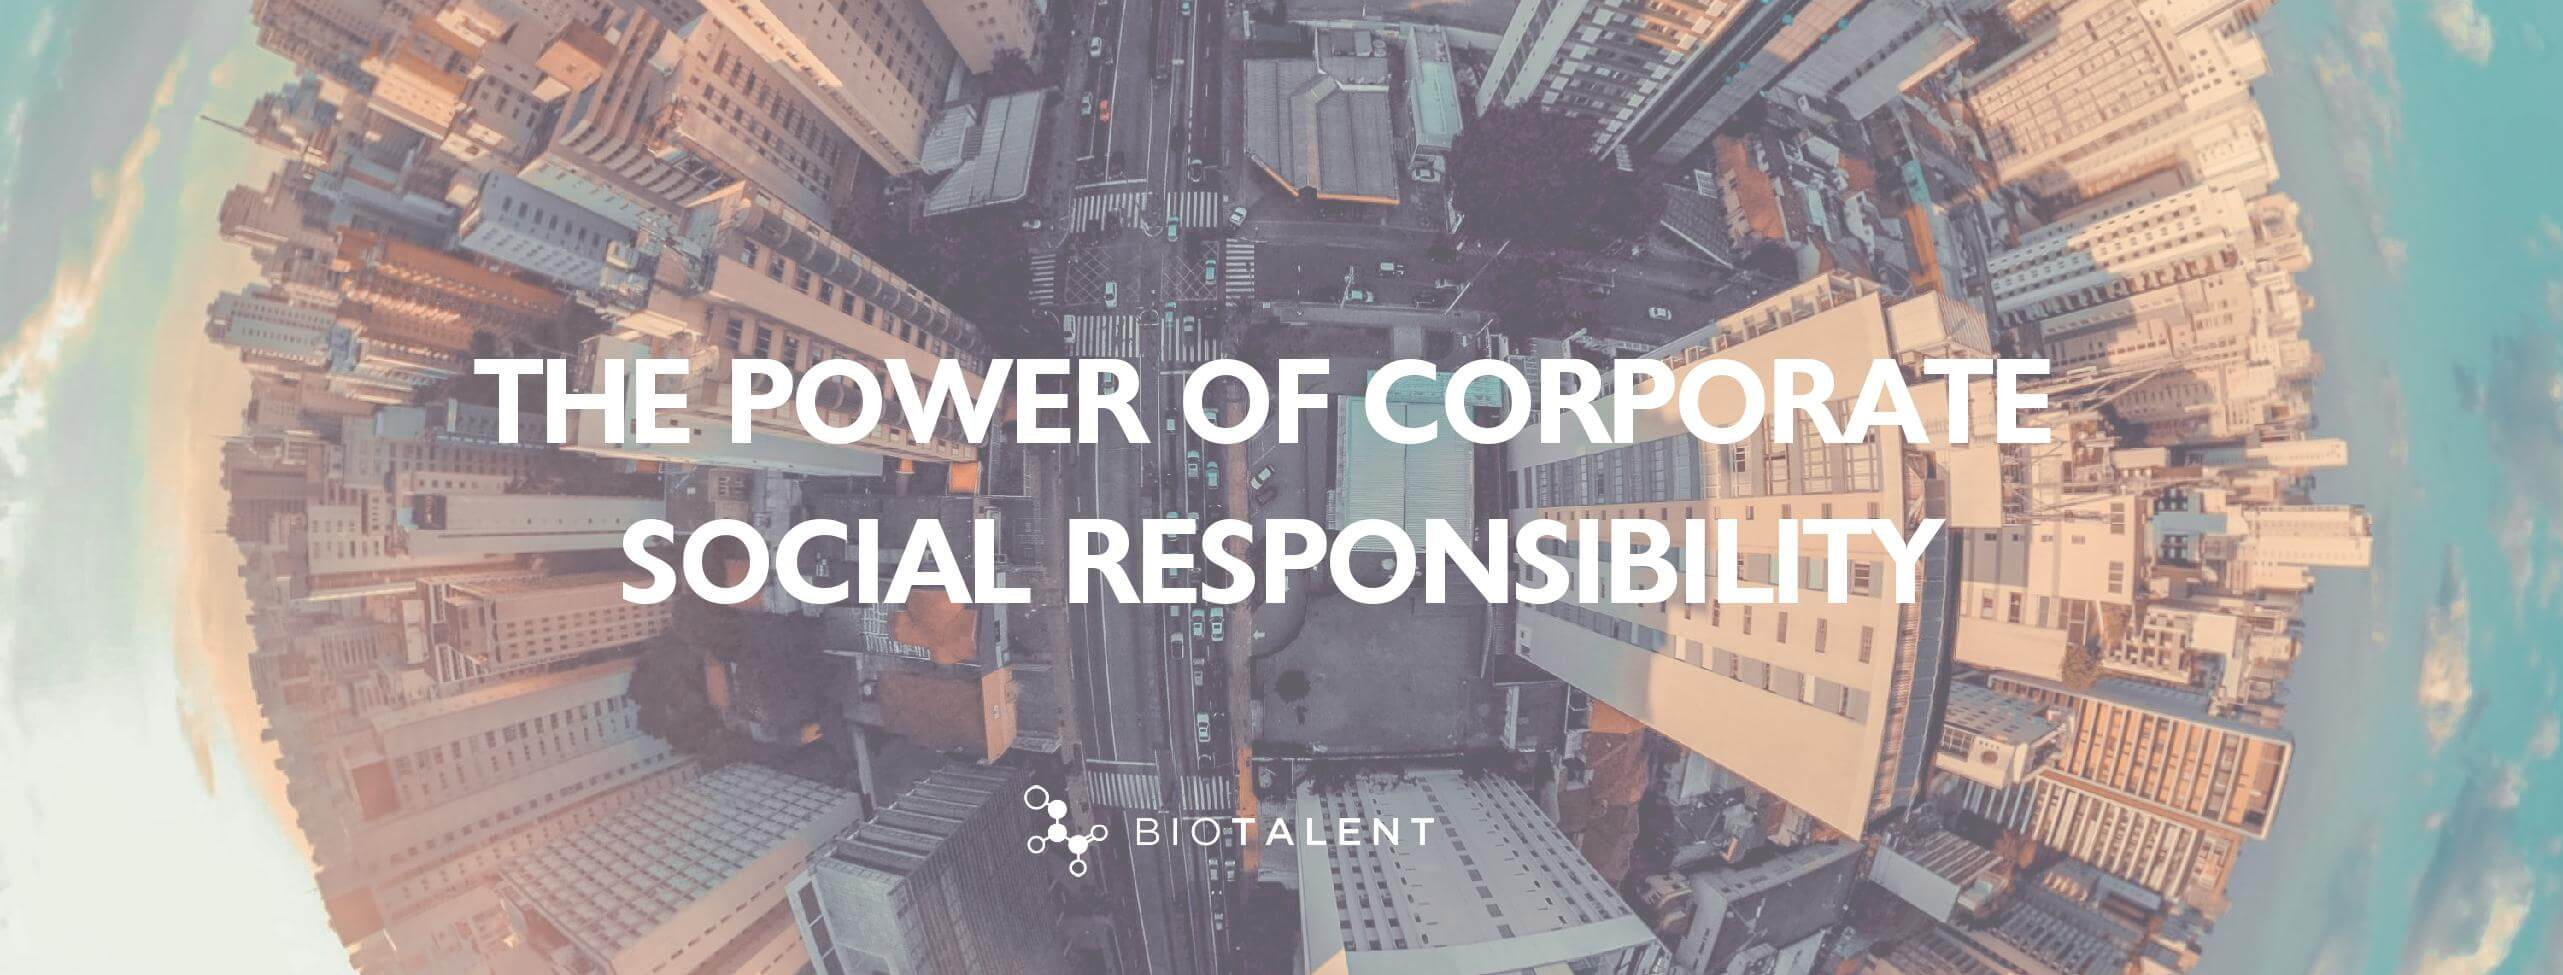 The Power of Corporate Social Responsibility